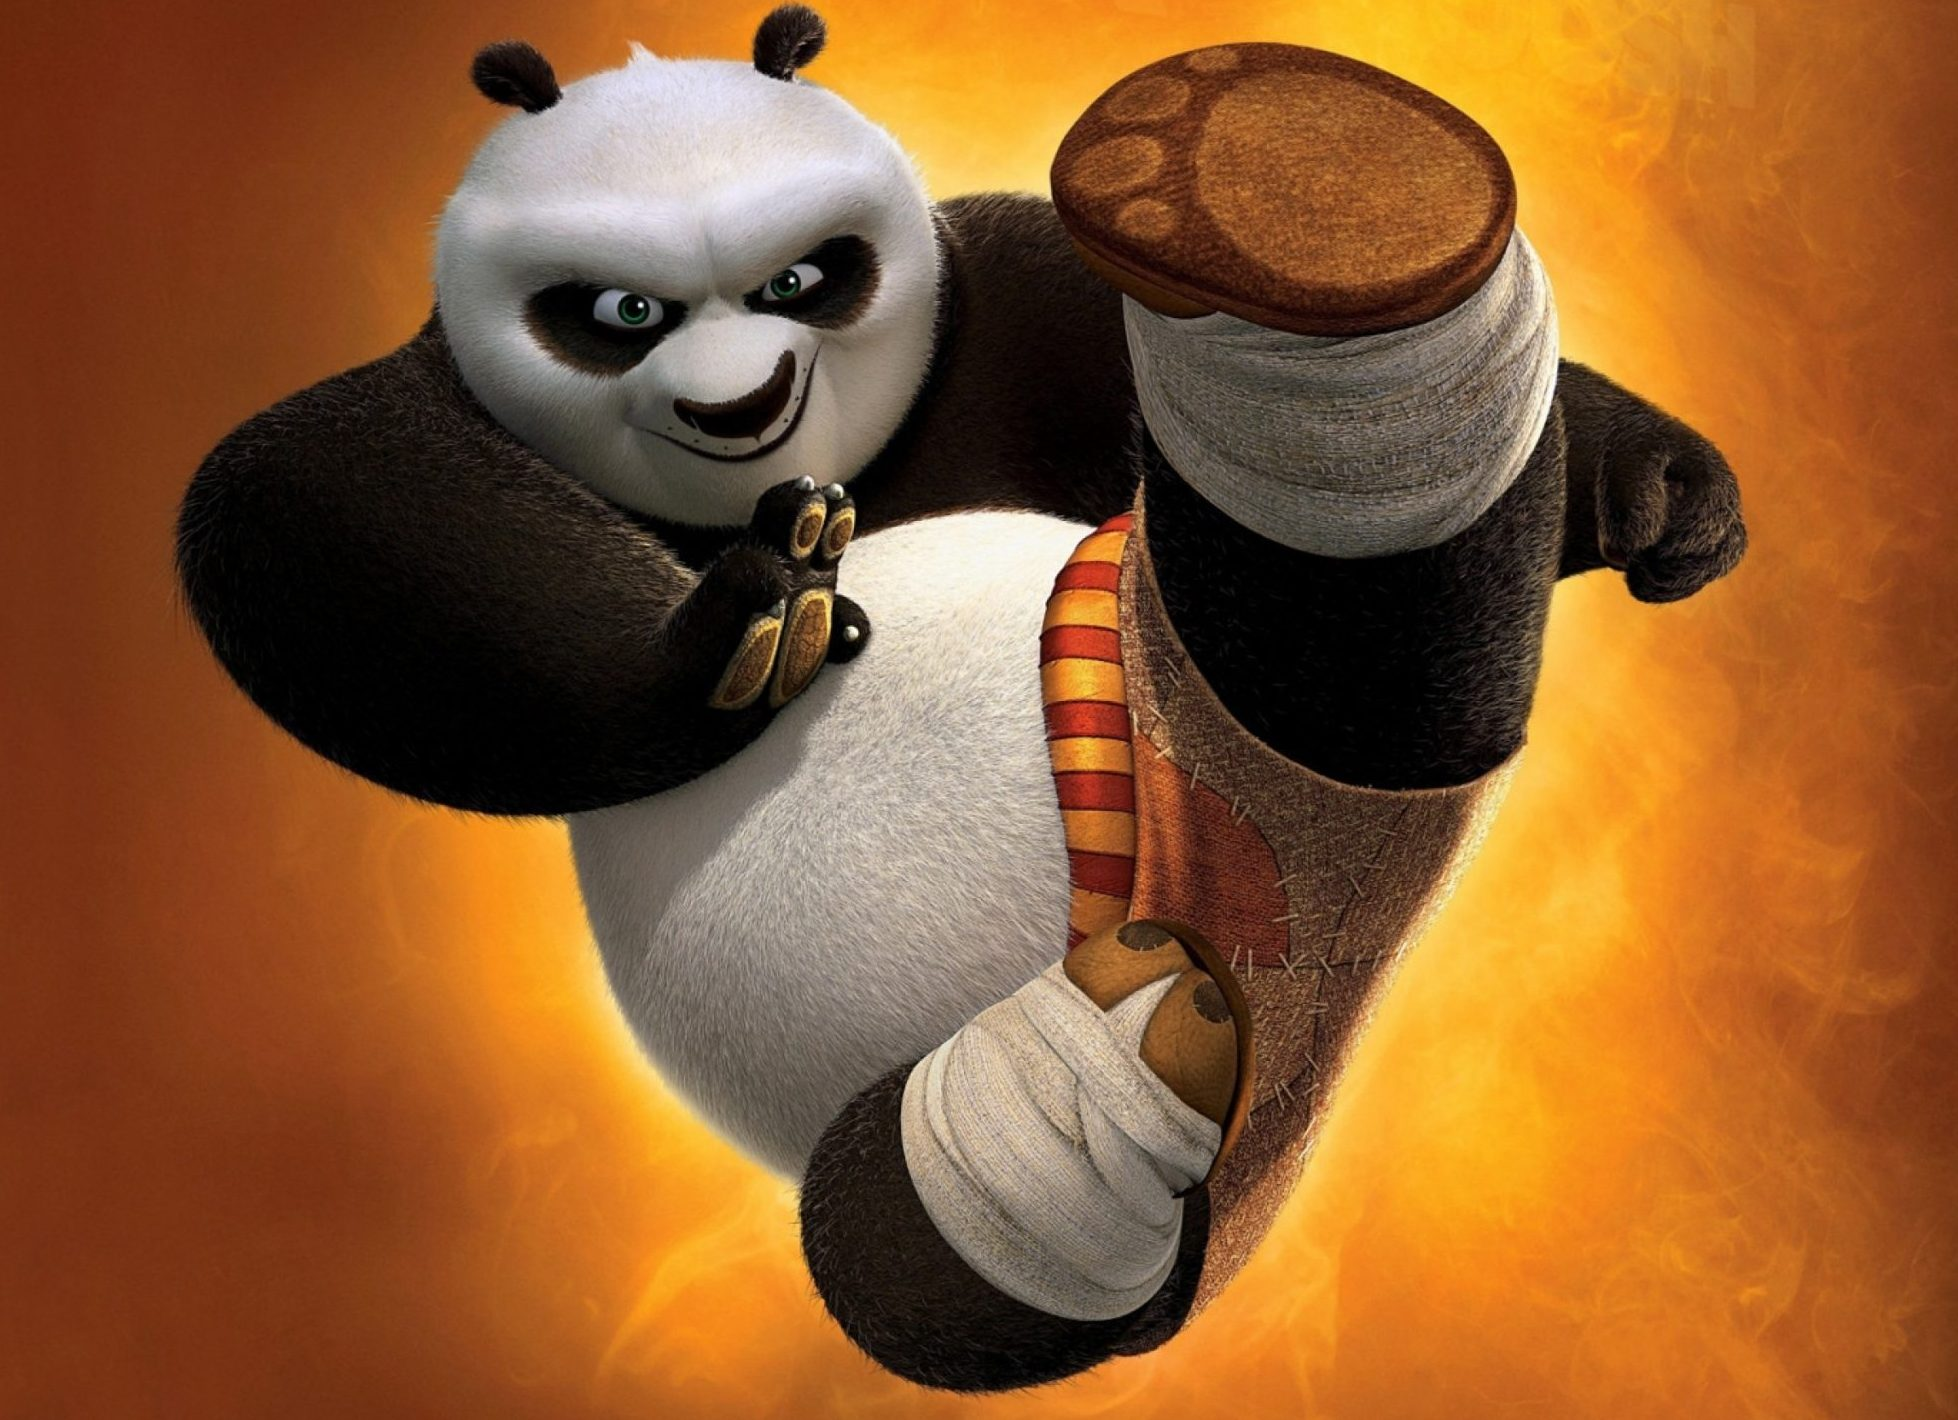 kung fu panda 3 ep dreamworks scaled e1621850163679 25 Things You Probably Didn't Know About Jean-Claude Van Damme